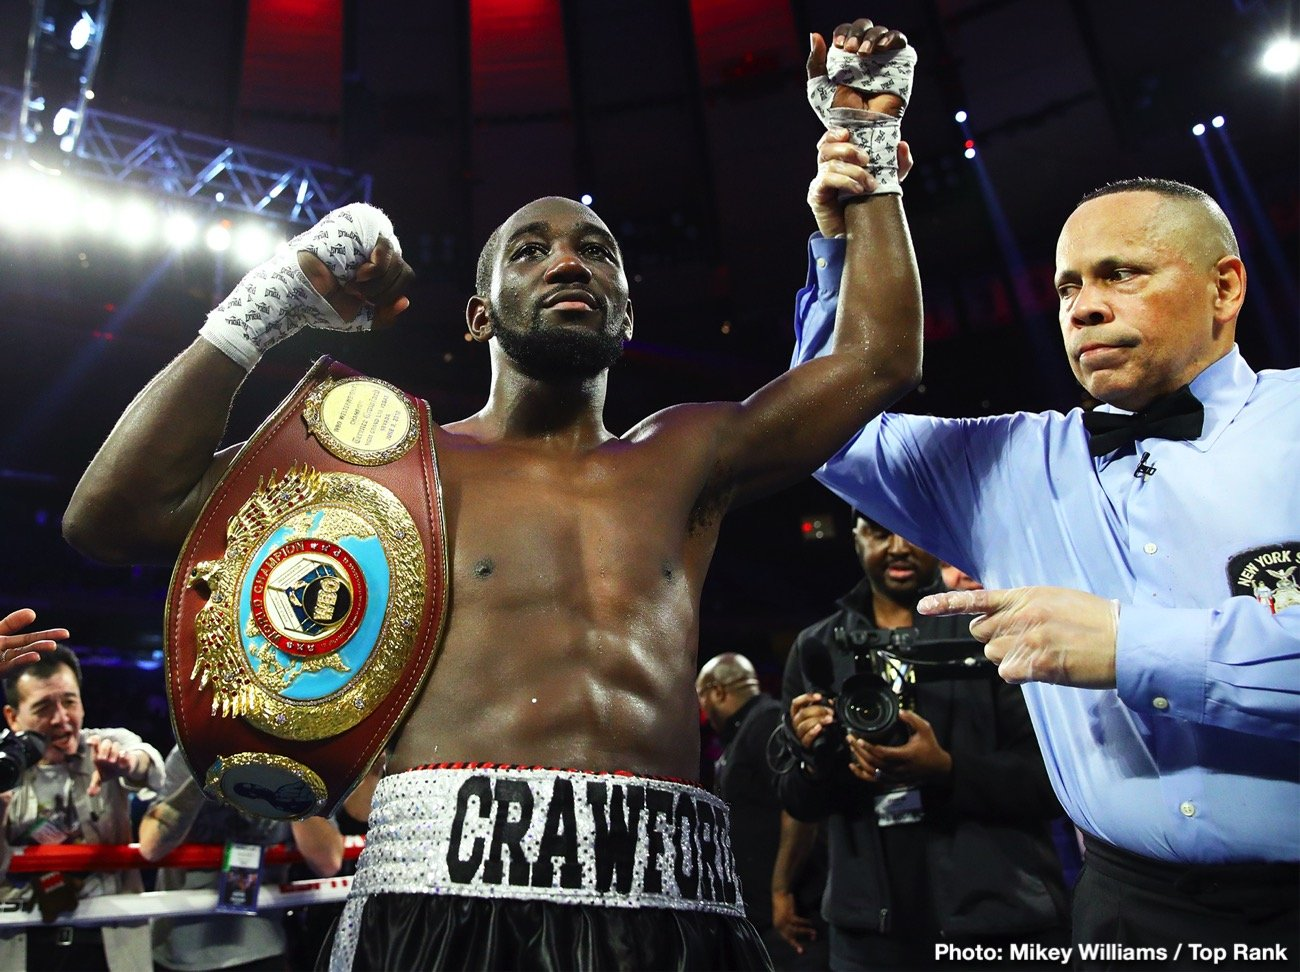 Terence Crawford - Terence Crawford wants the big names like Manny Pacquiao and Keith Thurman, but the odds of him getting any of the top welterweights during the pandemic is slim and none.